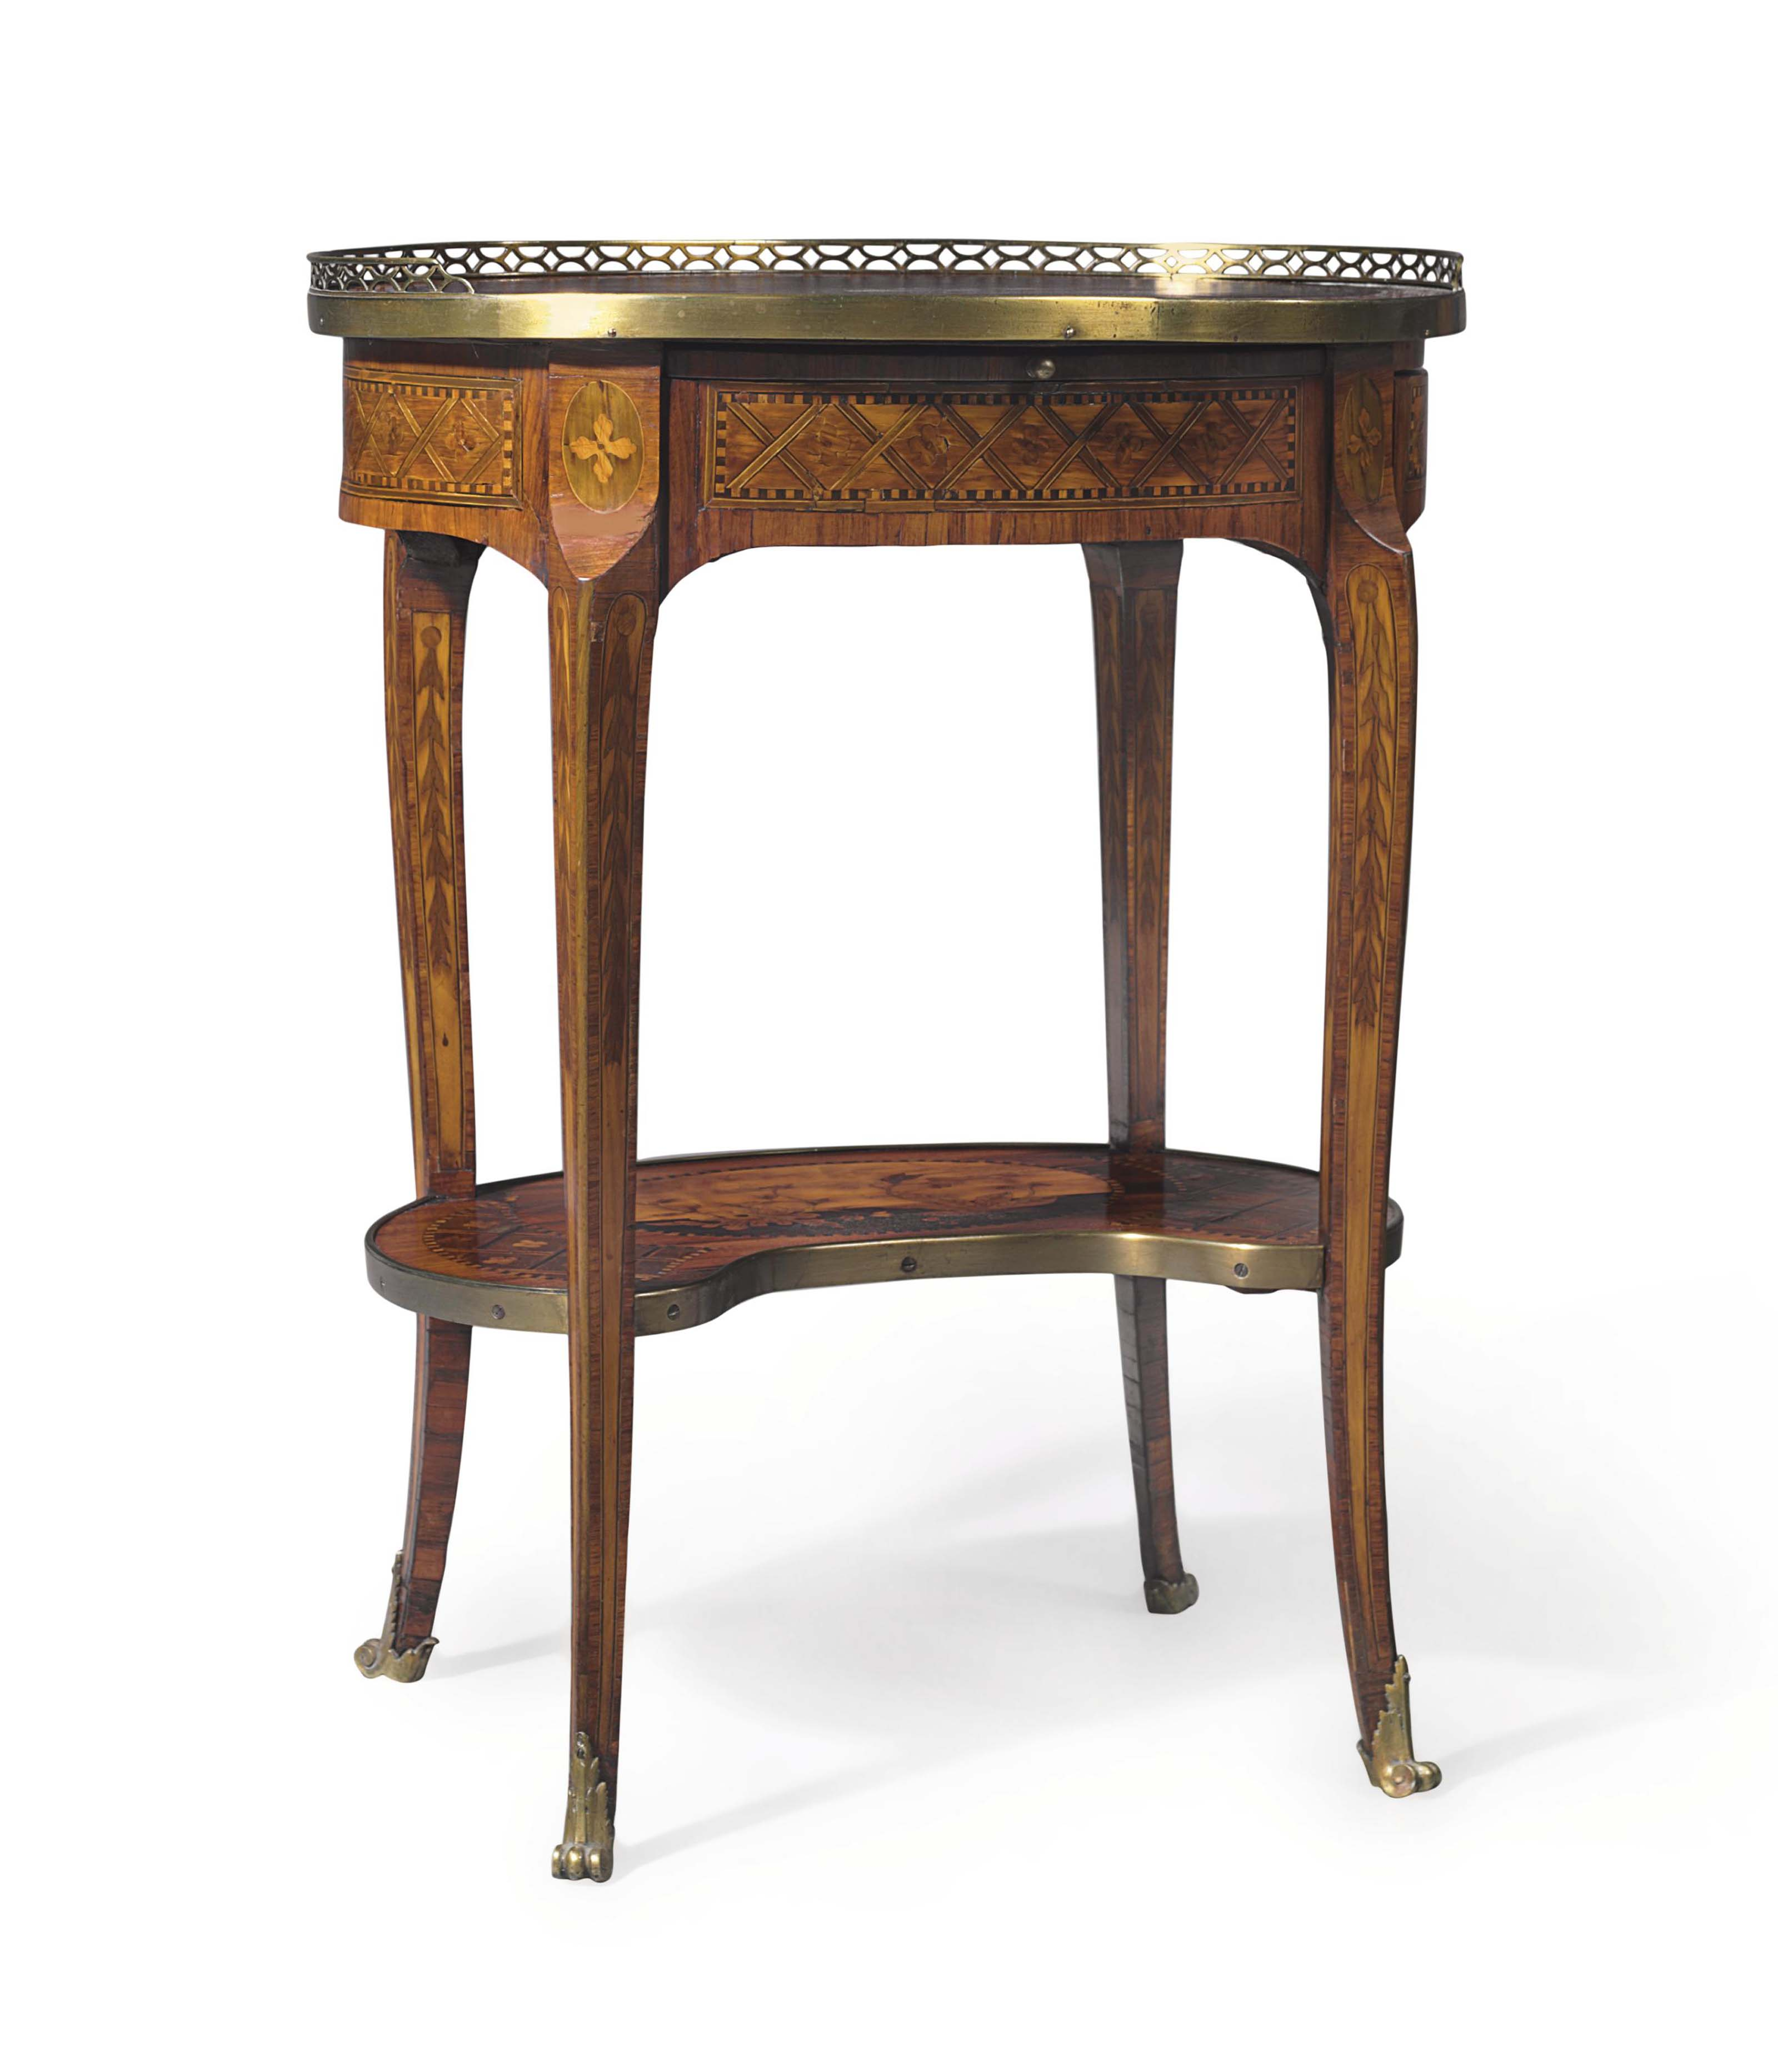 A LATE LOUIS XVI ORMOLU-MOUNTED TULIPWOOD, PARQUETRY AND MARQUETRY OCCASIONAL TABLE